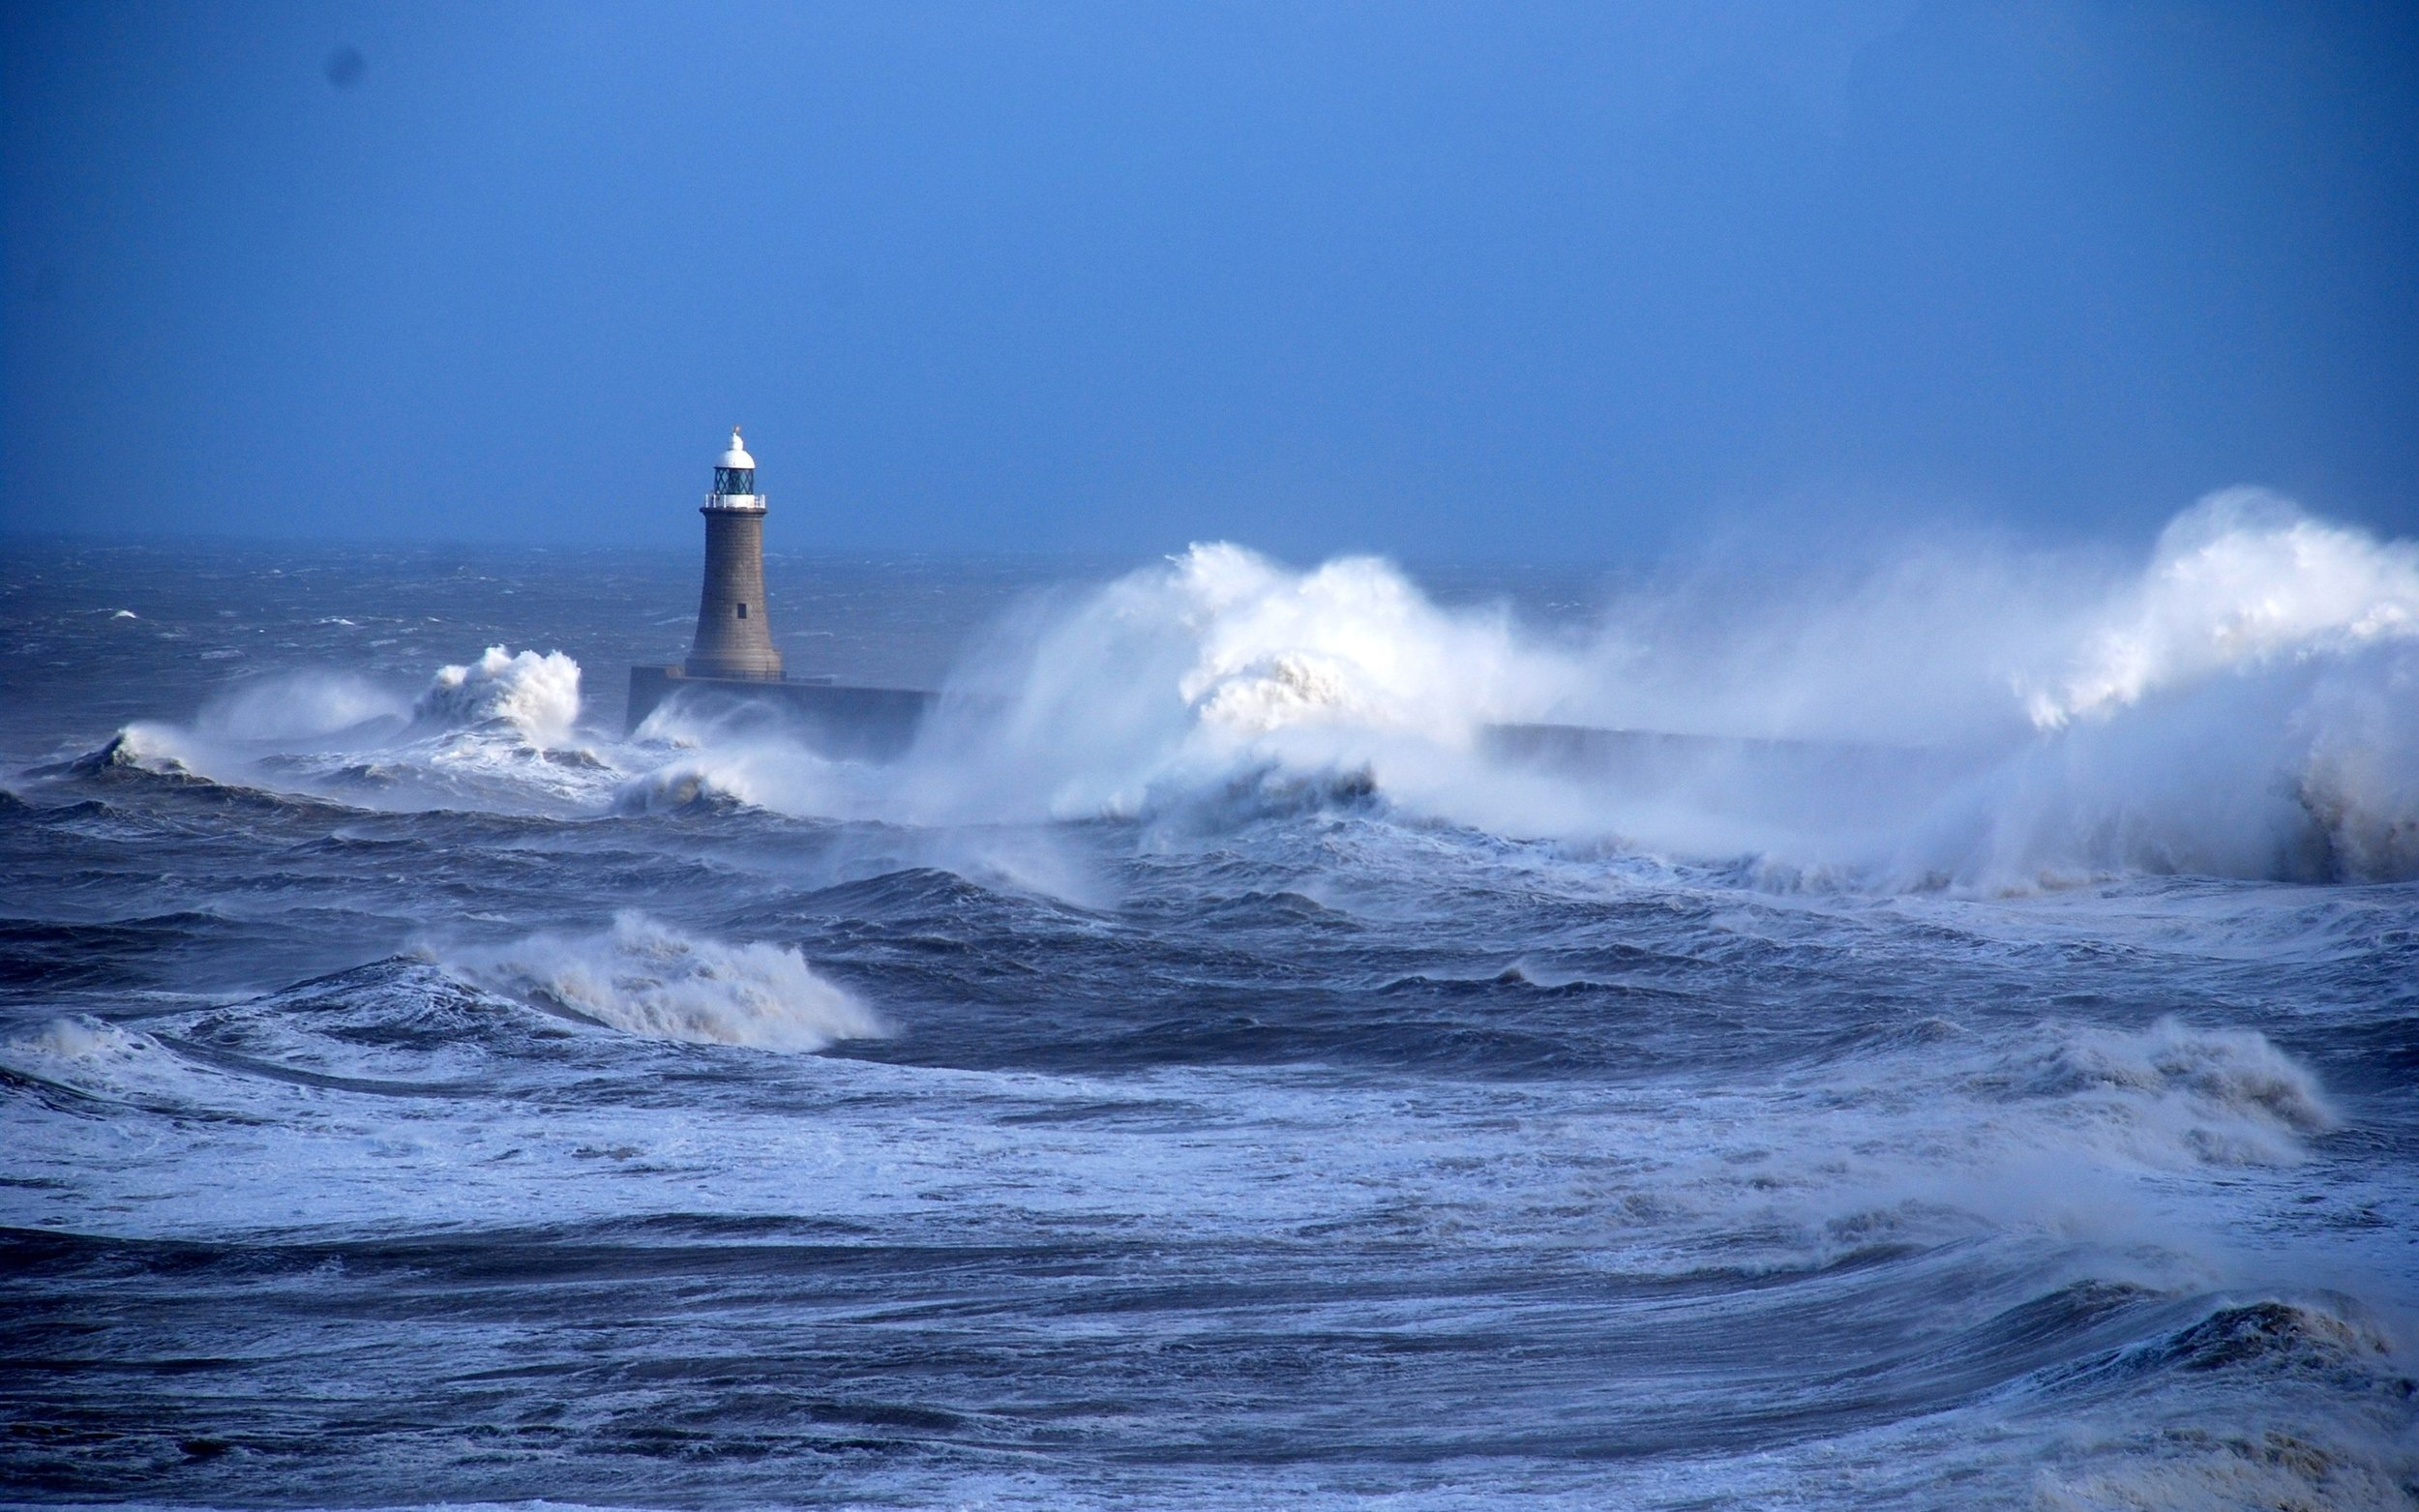 Sea-storm-waves-lighthouse_2880x1800.jpg